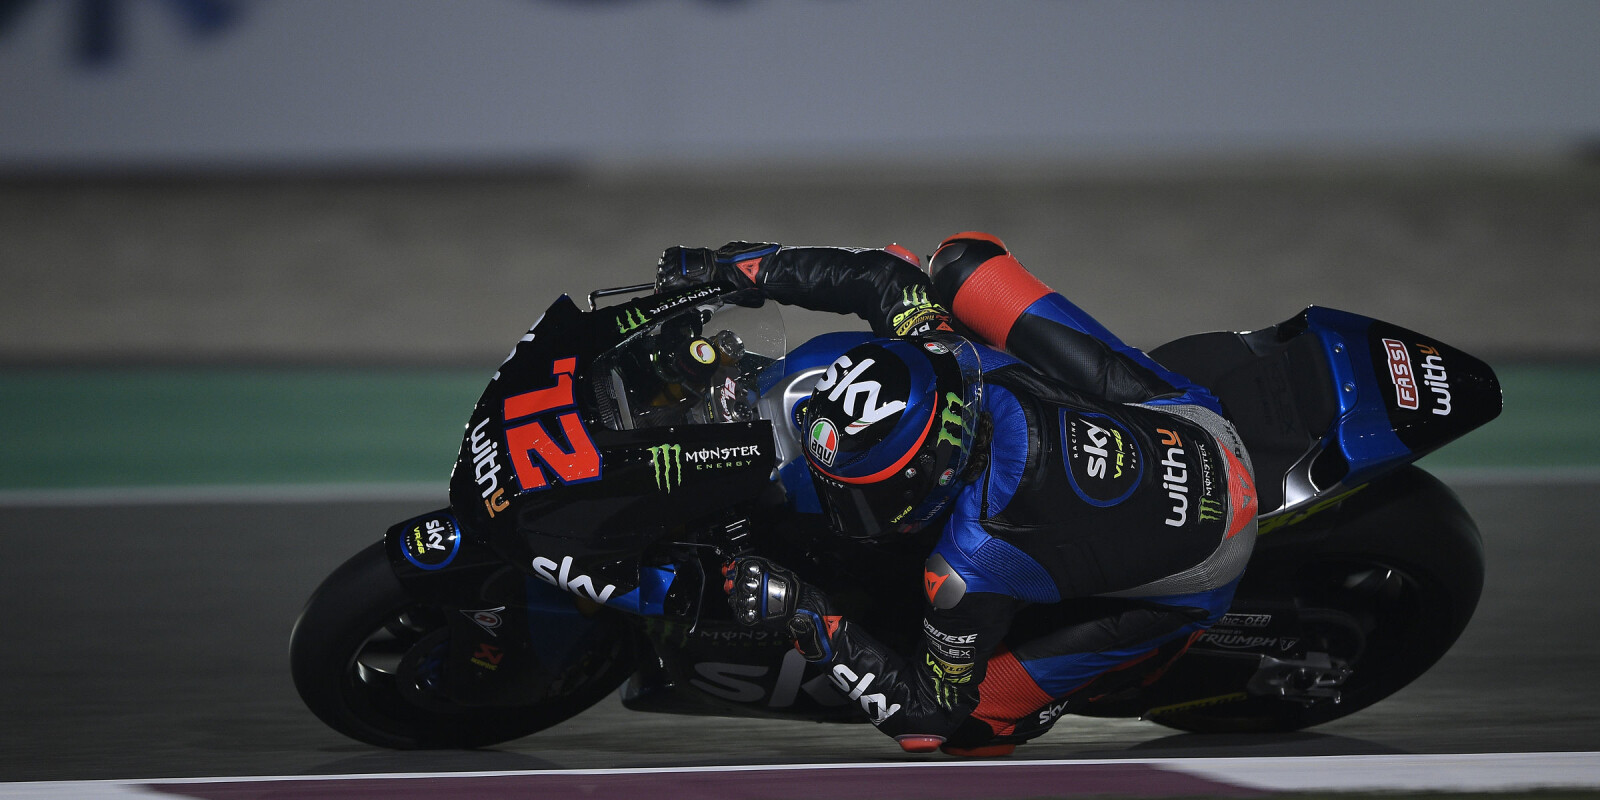 Moto2 images from the 2020 Grand Prix of Qatar